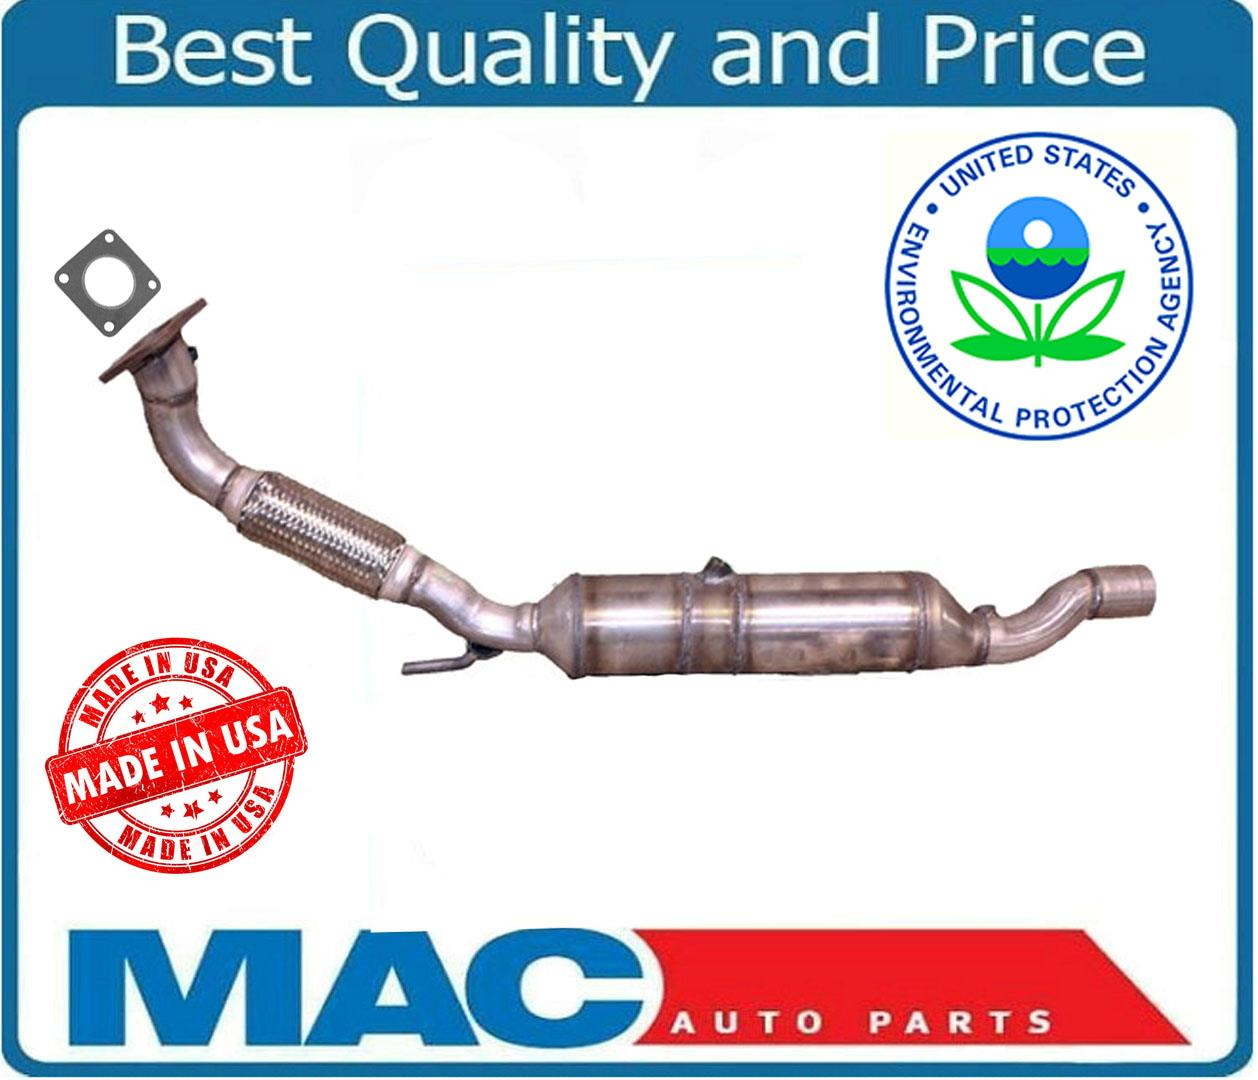 2001-2005 VOLKSWAGEN BEETLE 2.0L DIRECT-FIT FRONT PIPE WITH CATALYTIC CONVERTER